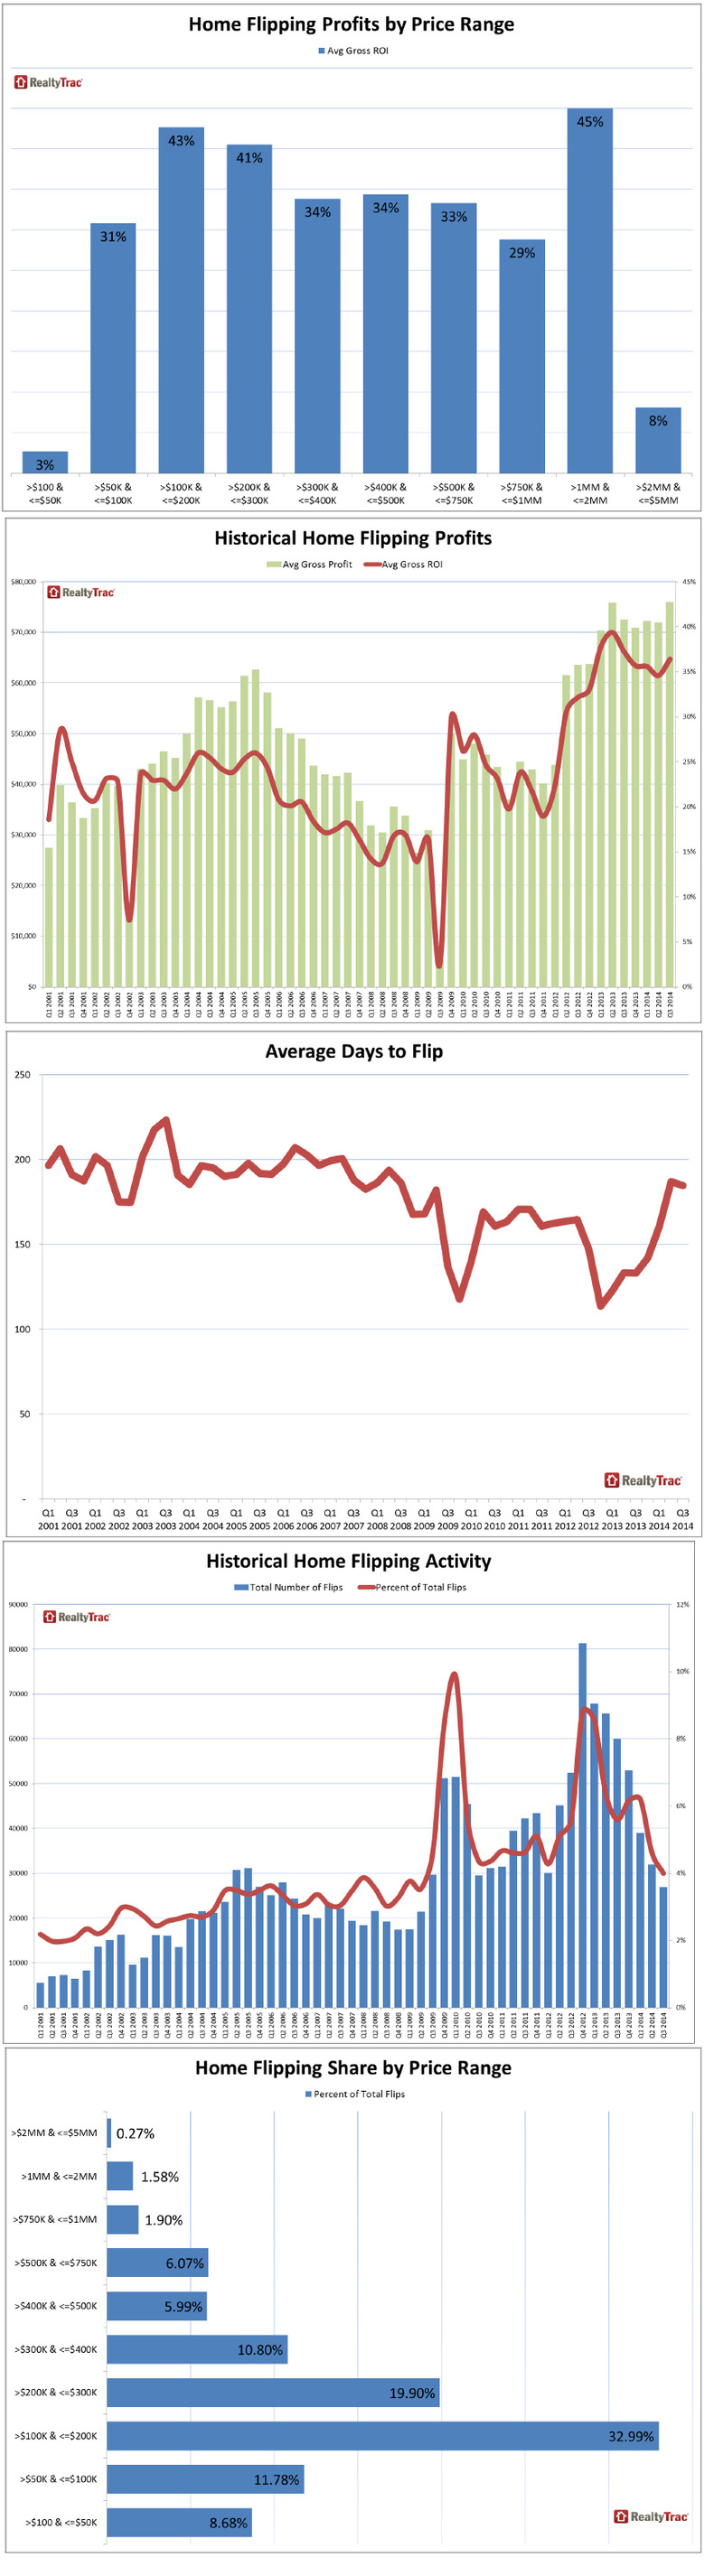 Q3-2014-Home-Flipping-Data-by-State-charts.jpg